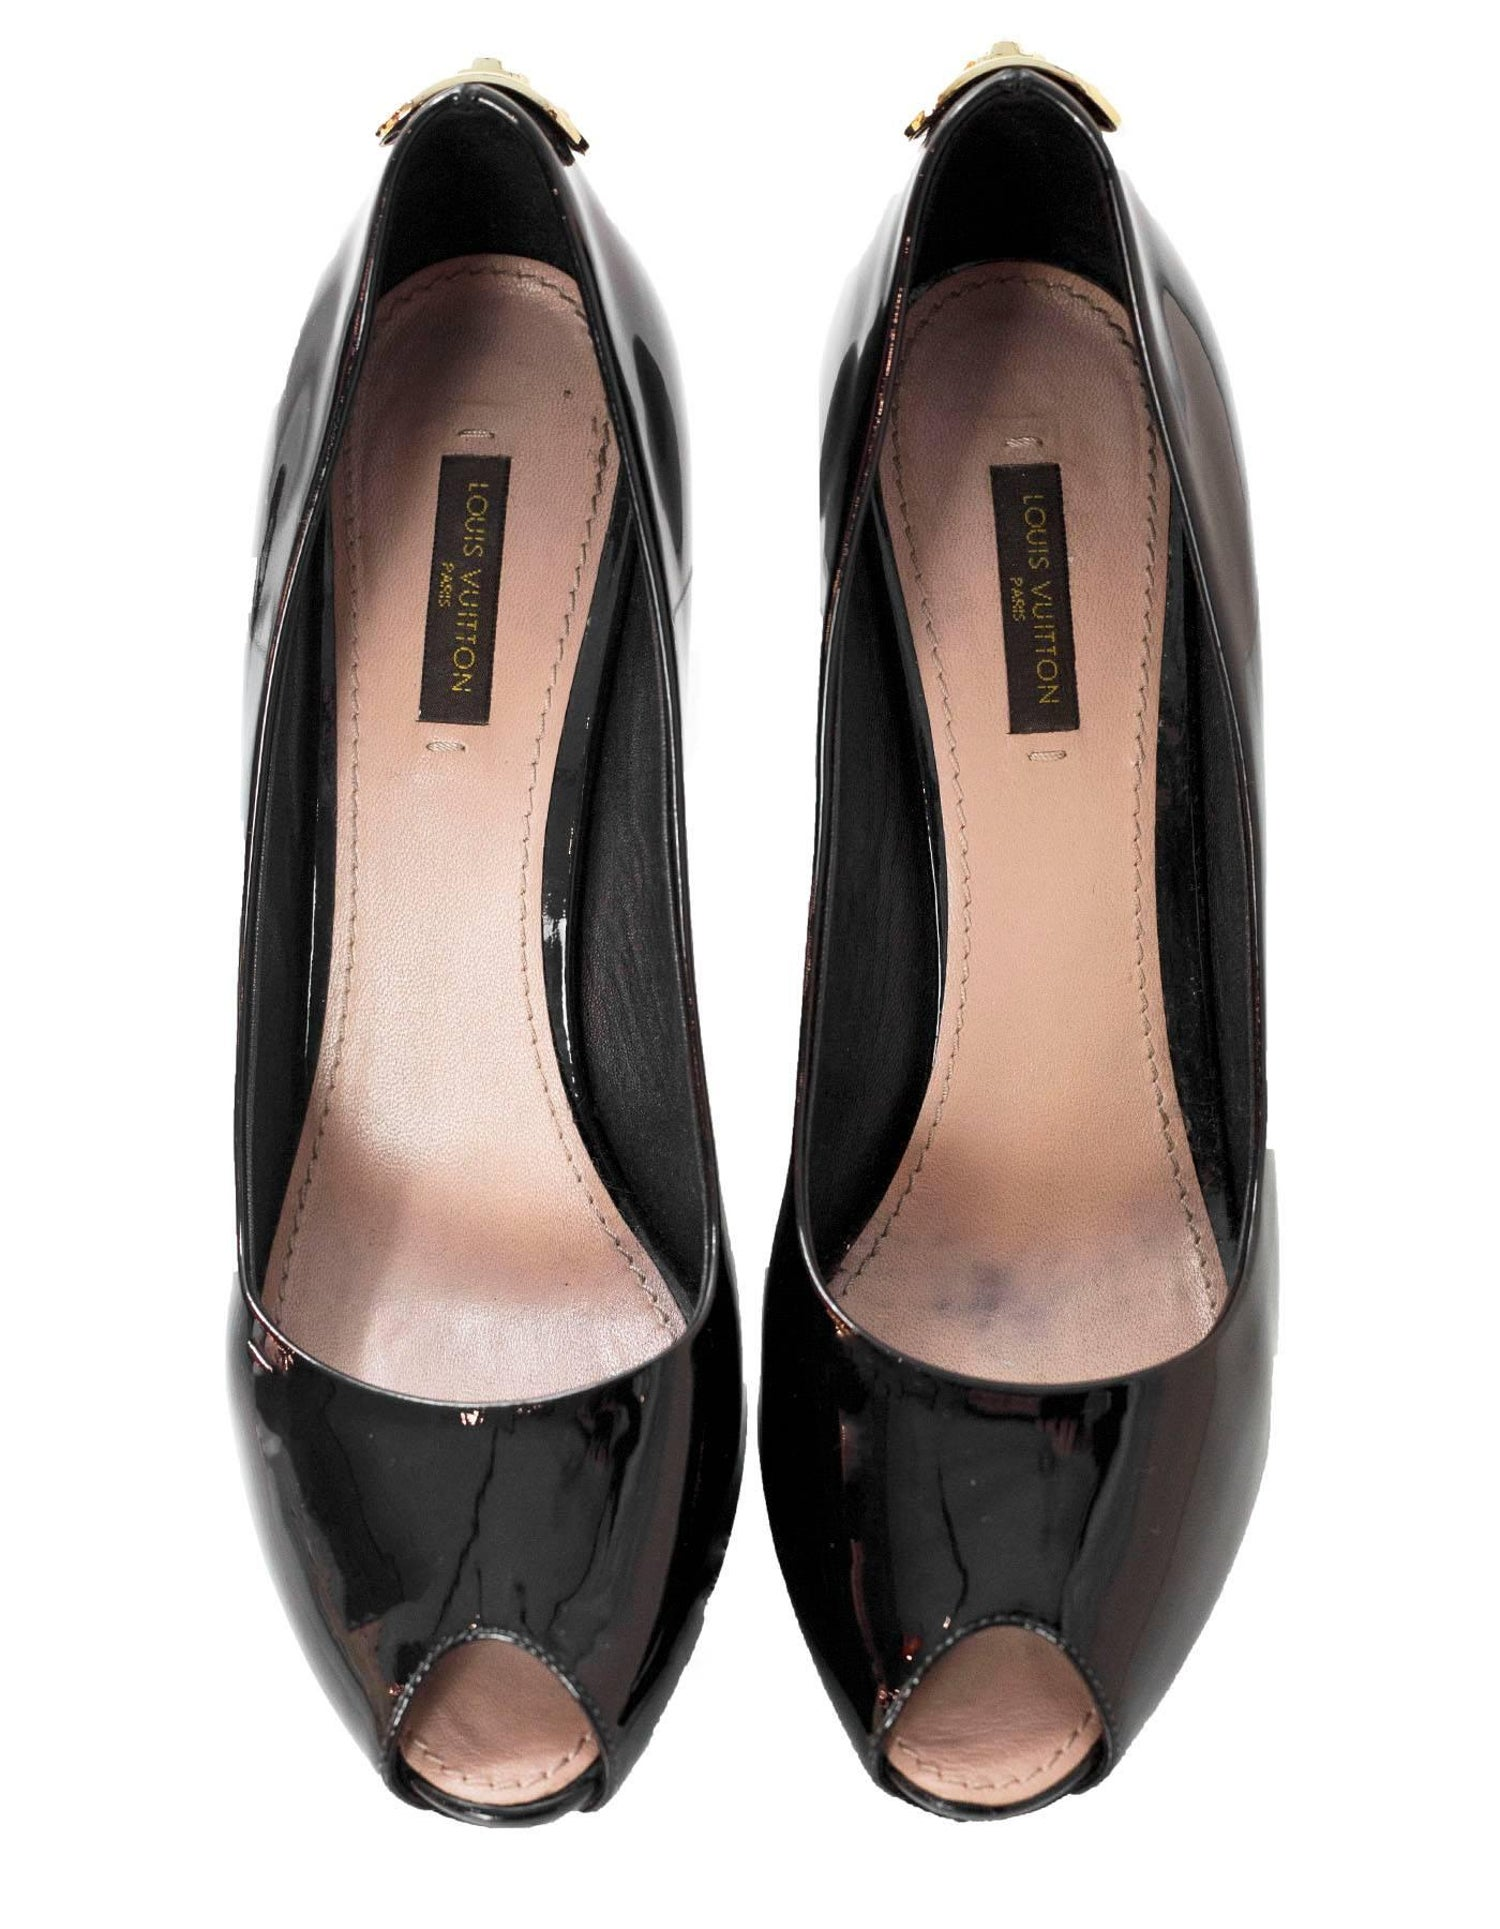 a181cf4af0 Louis Vuitton Black Patent Leather Oh Really! Peep-Toe Pumps Sz 38 with DB  For Sale at 1stdibs